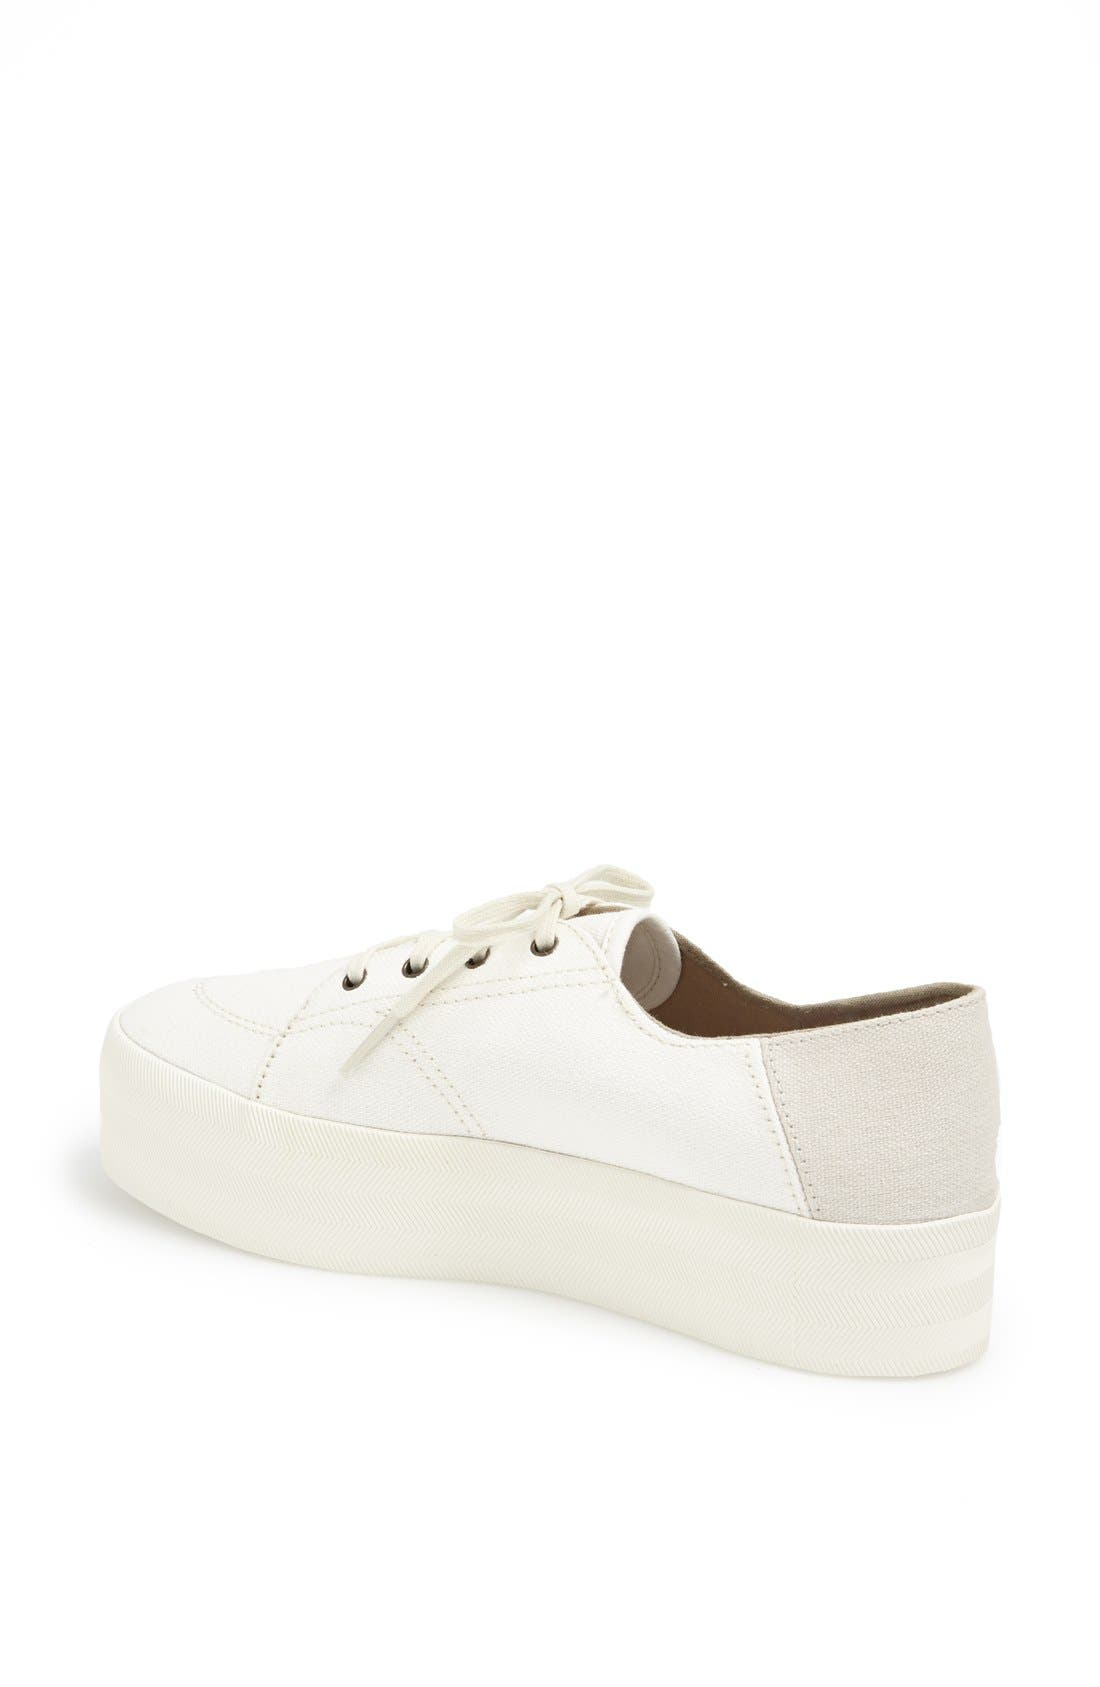 Alternate Image 2  - Lacoste 'Kirton' Platform Sneaker (Women) (Online Exclusive)